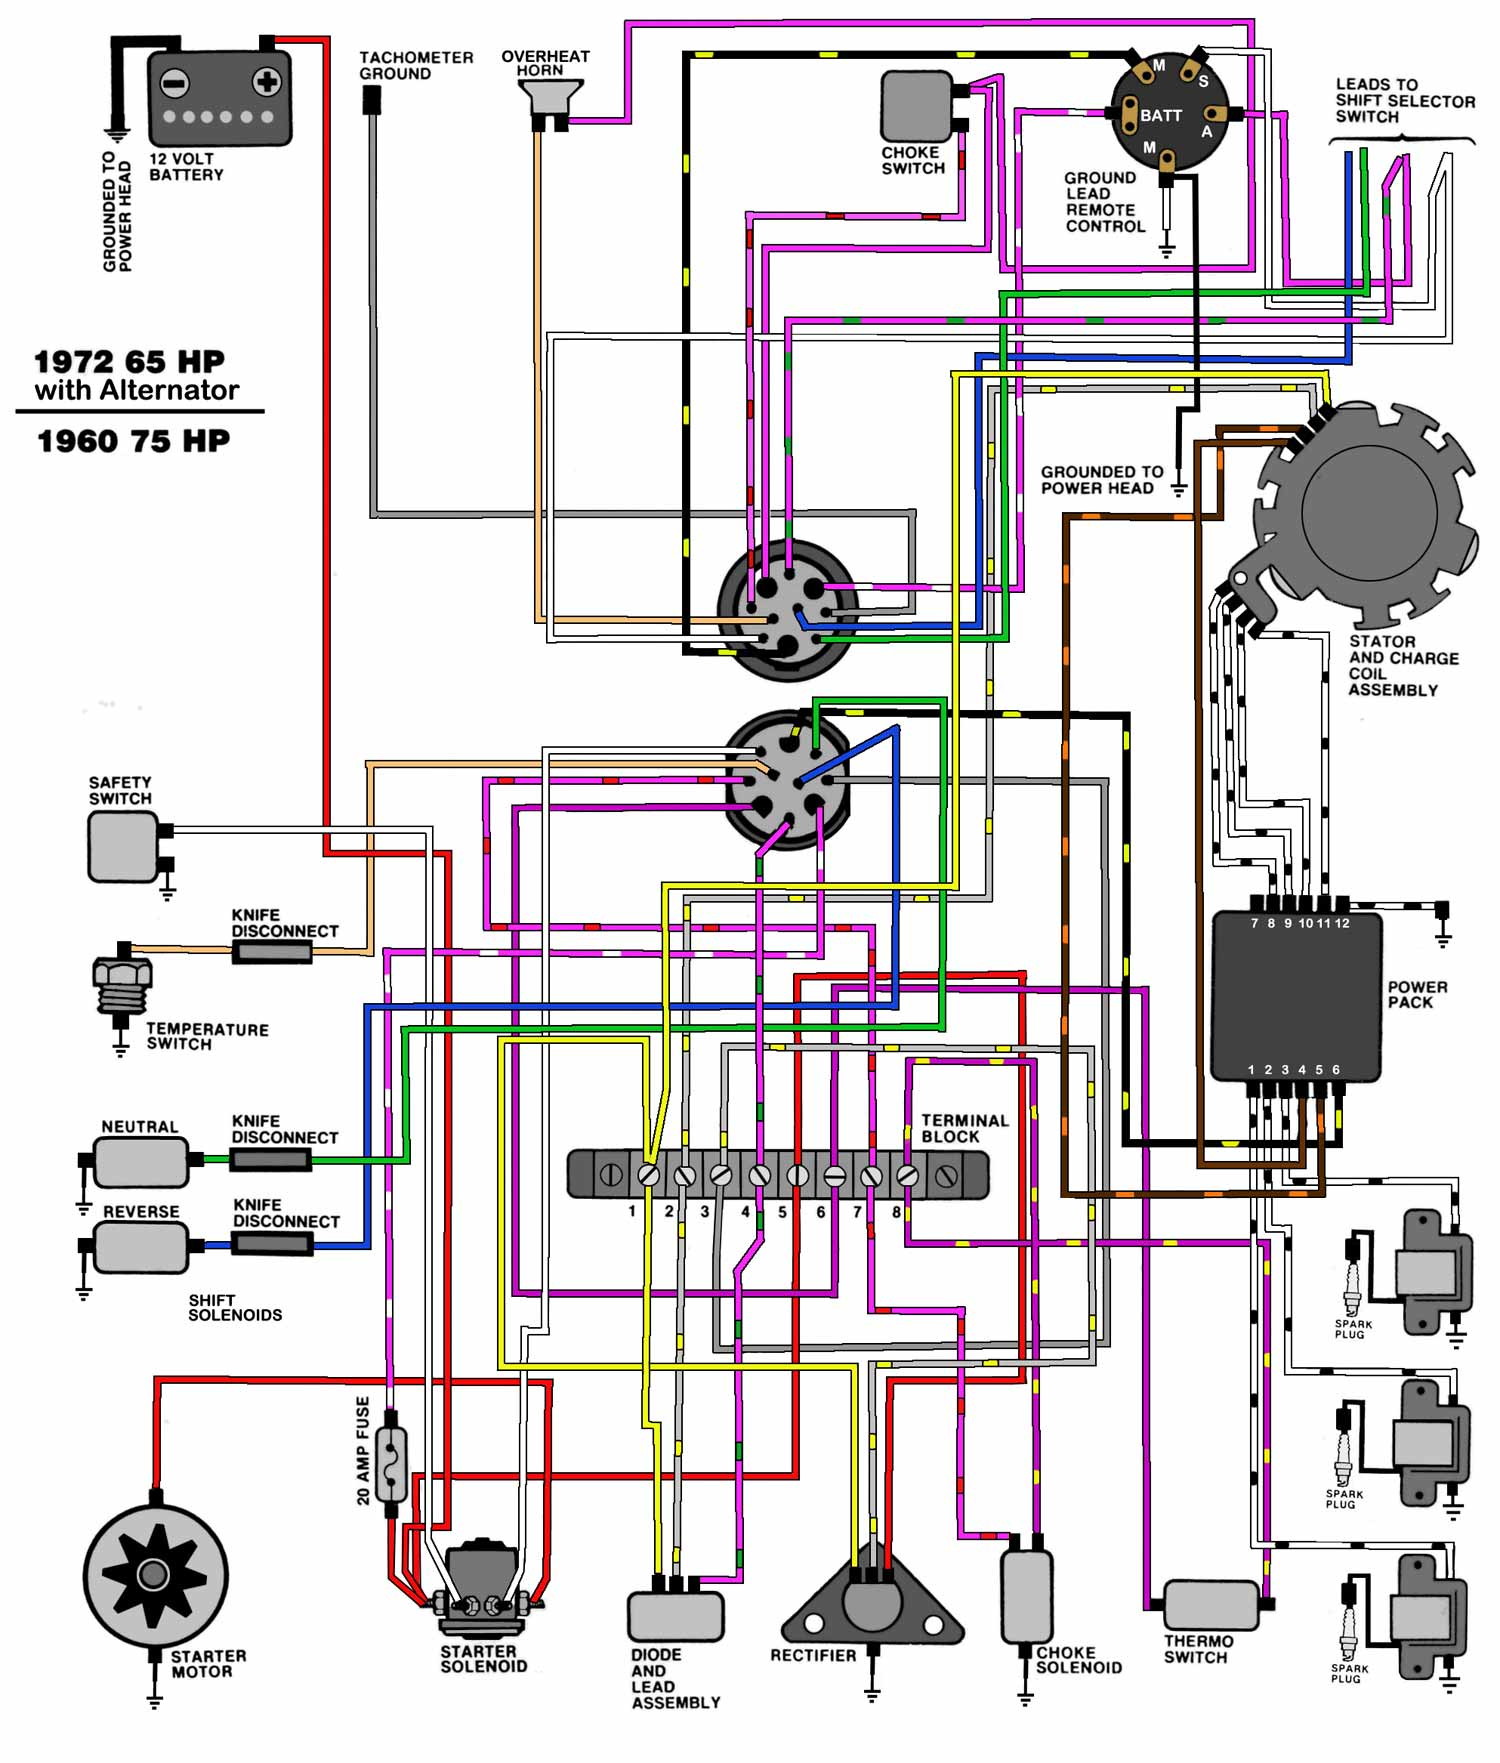 wiring diagram for omc cobra evinrude johnson outboard wiring diagrams -- mastertech ...